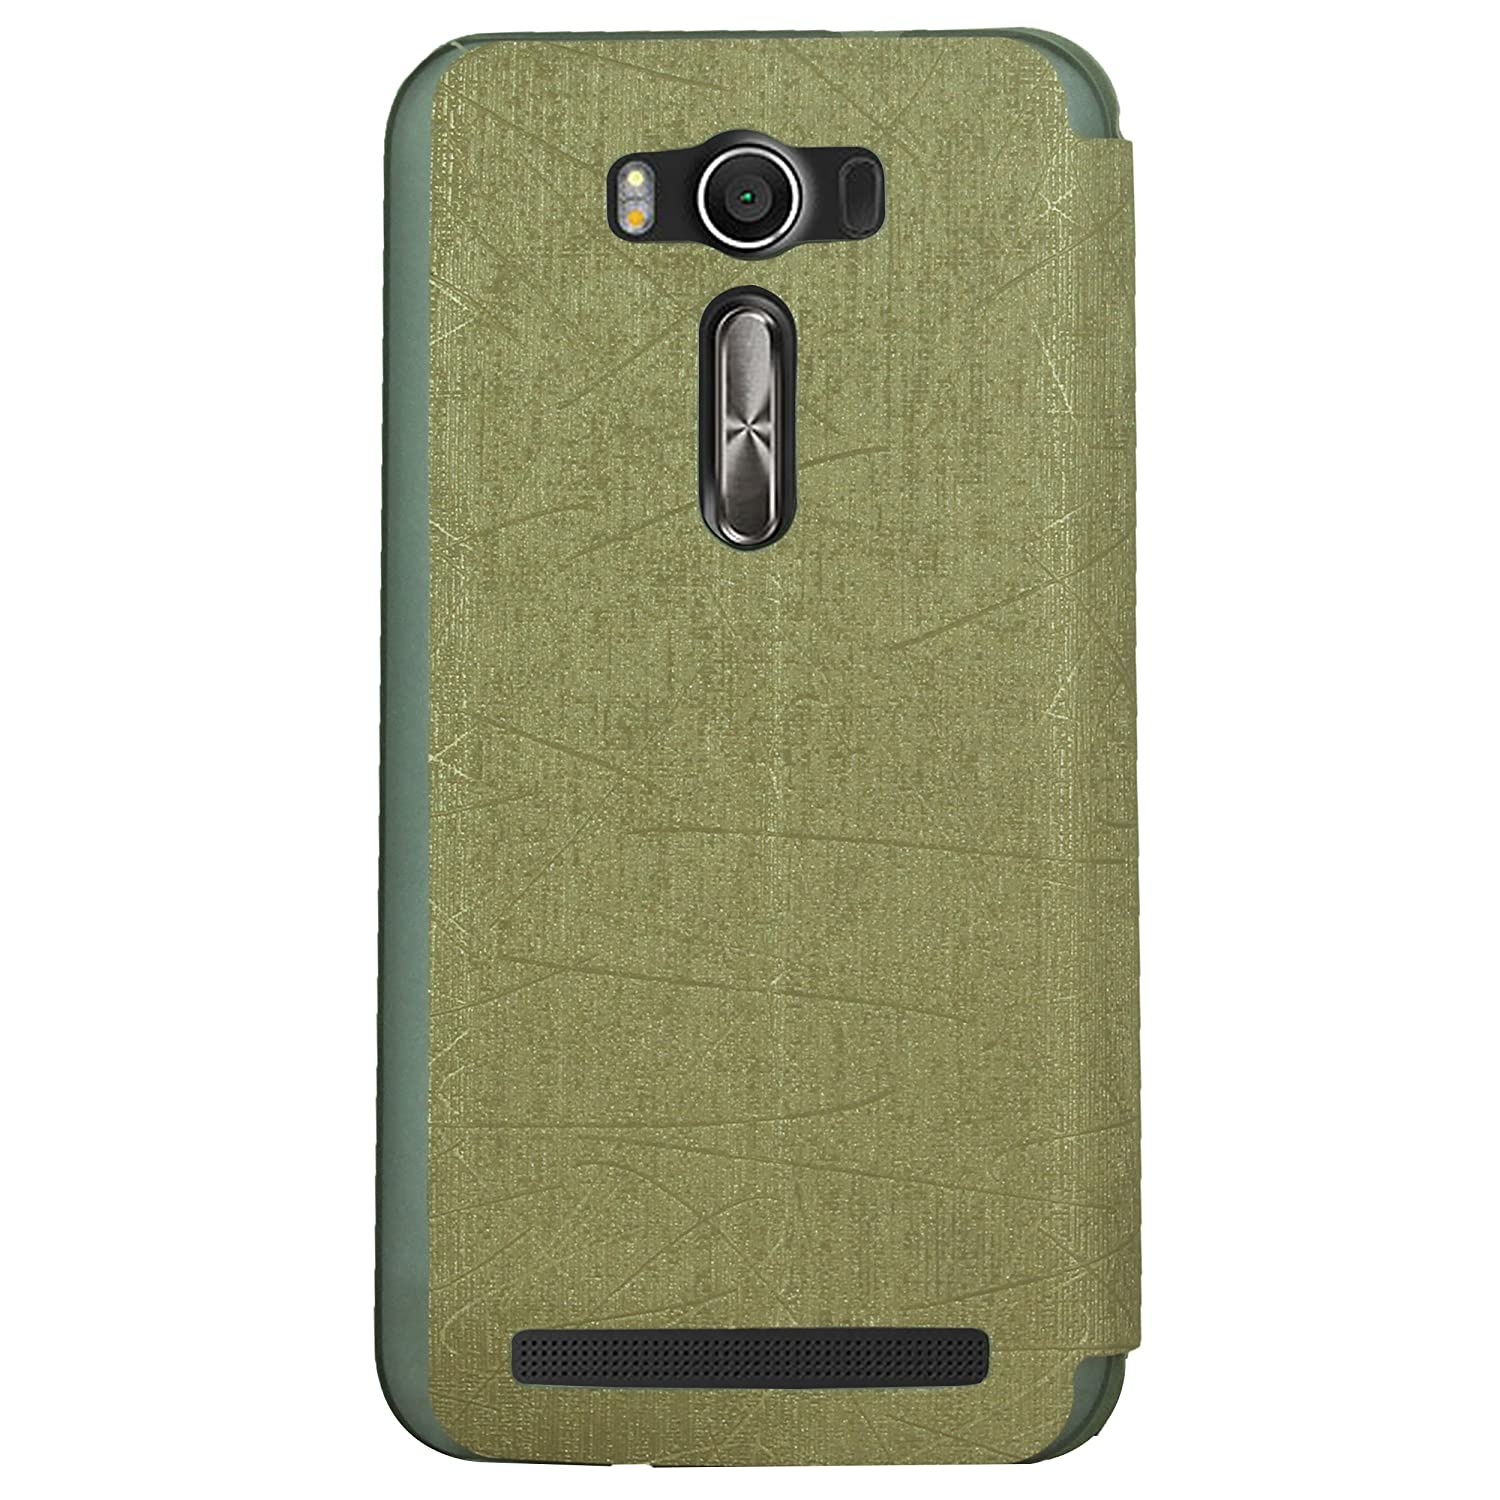 Tpu Grip Cover With Kickstand For Asus Zenfone 2 Laser 60 Ze600kl Ze601kl Free Zenflash Heartly Premium Luxury Pu Leather Flip Stand Back Case Ze500kl